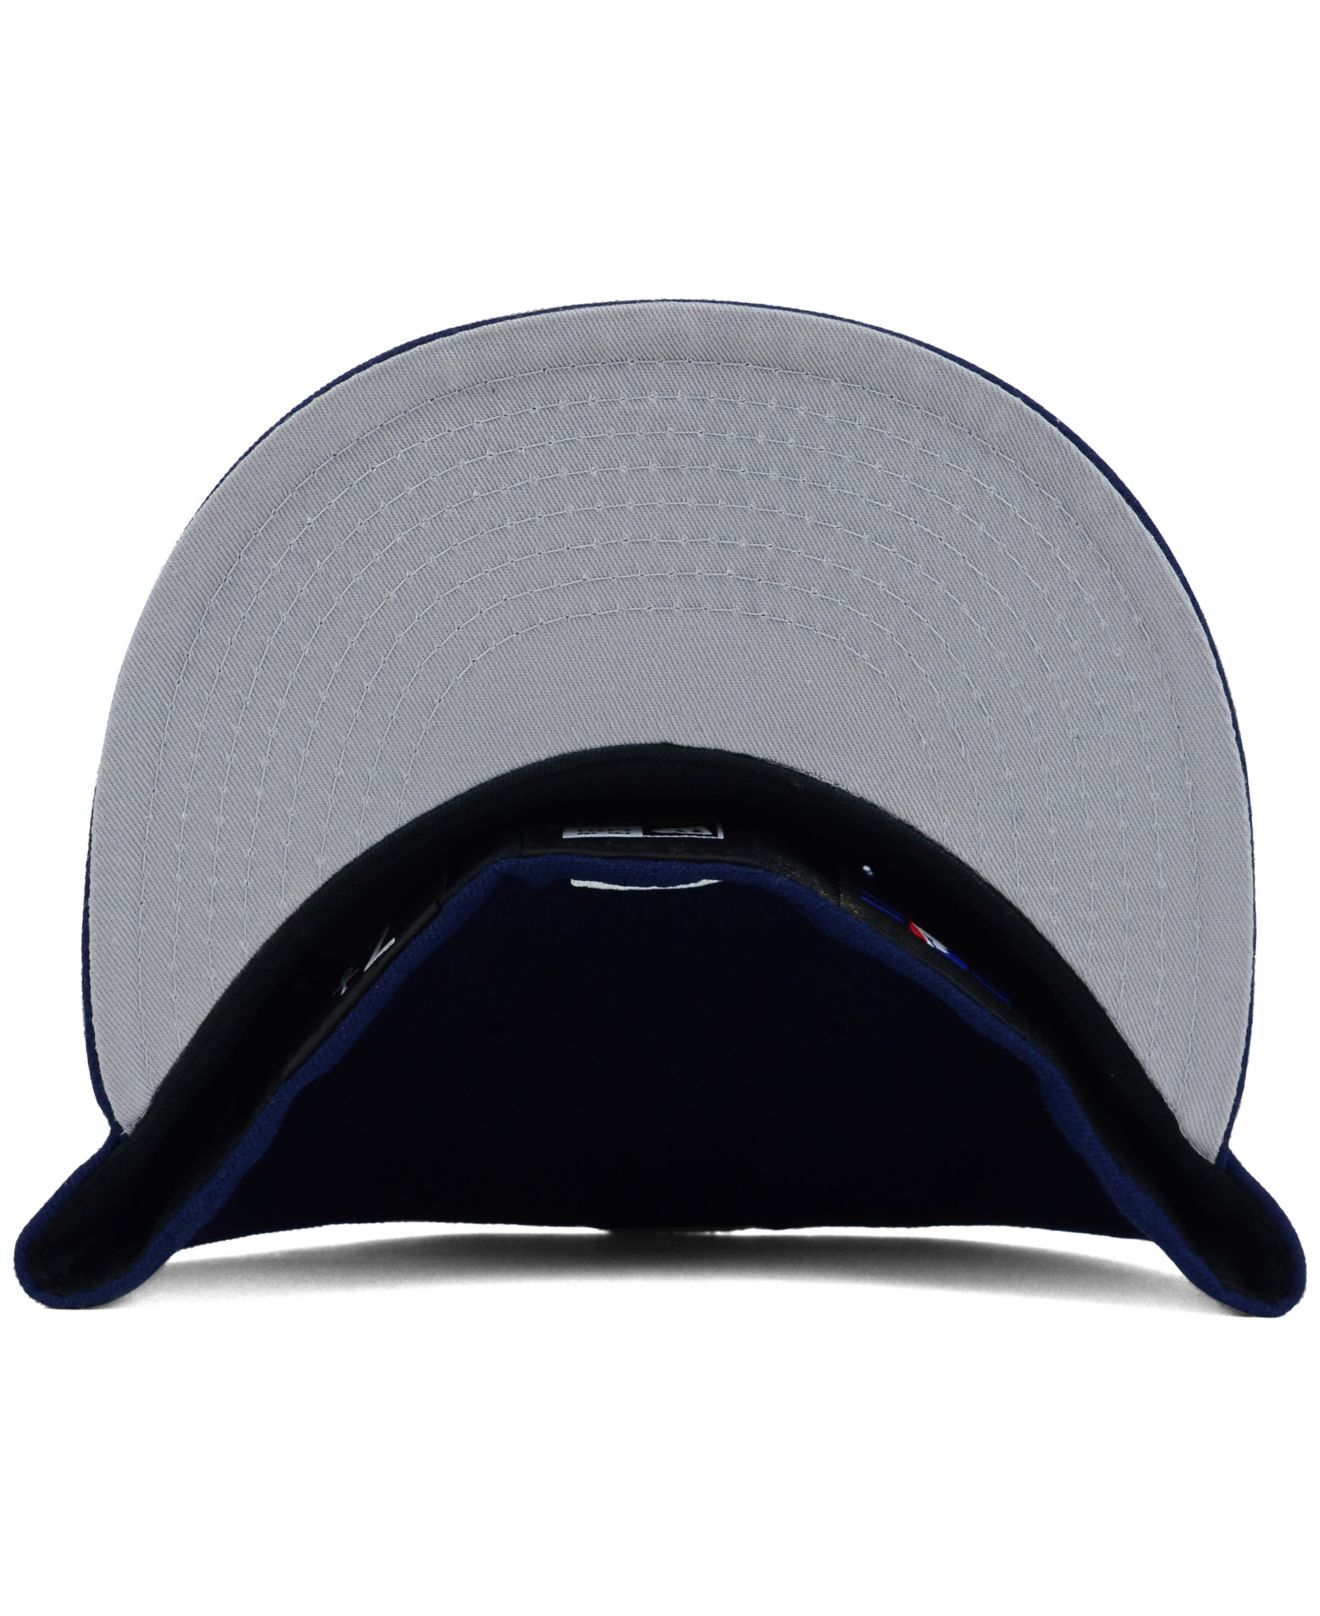 competitive price c72a6 a2e90 ... free shipping lyst ktz pittsburgh pirates c dub 59fifty cap in blue for  men 54399 608f7